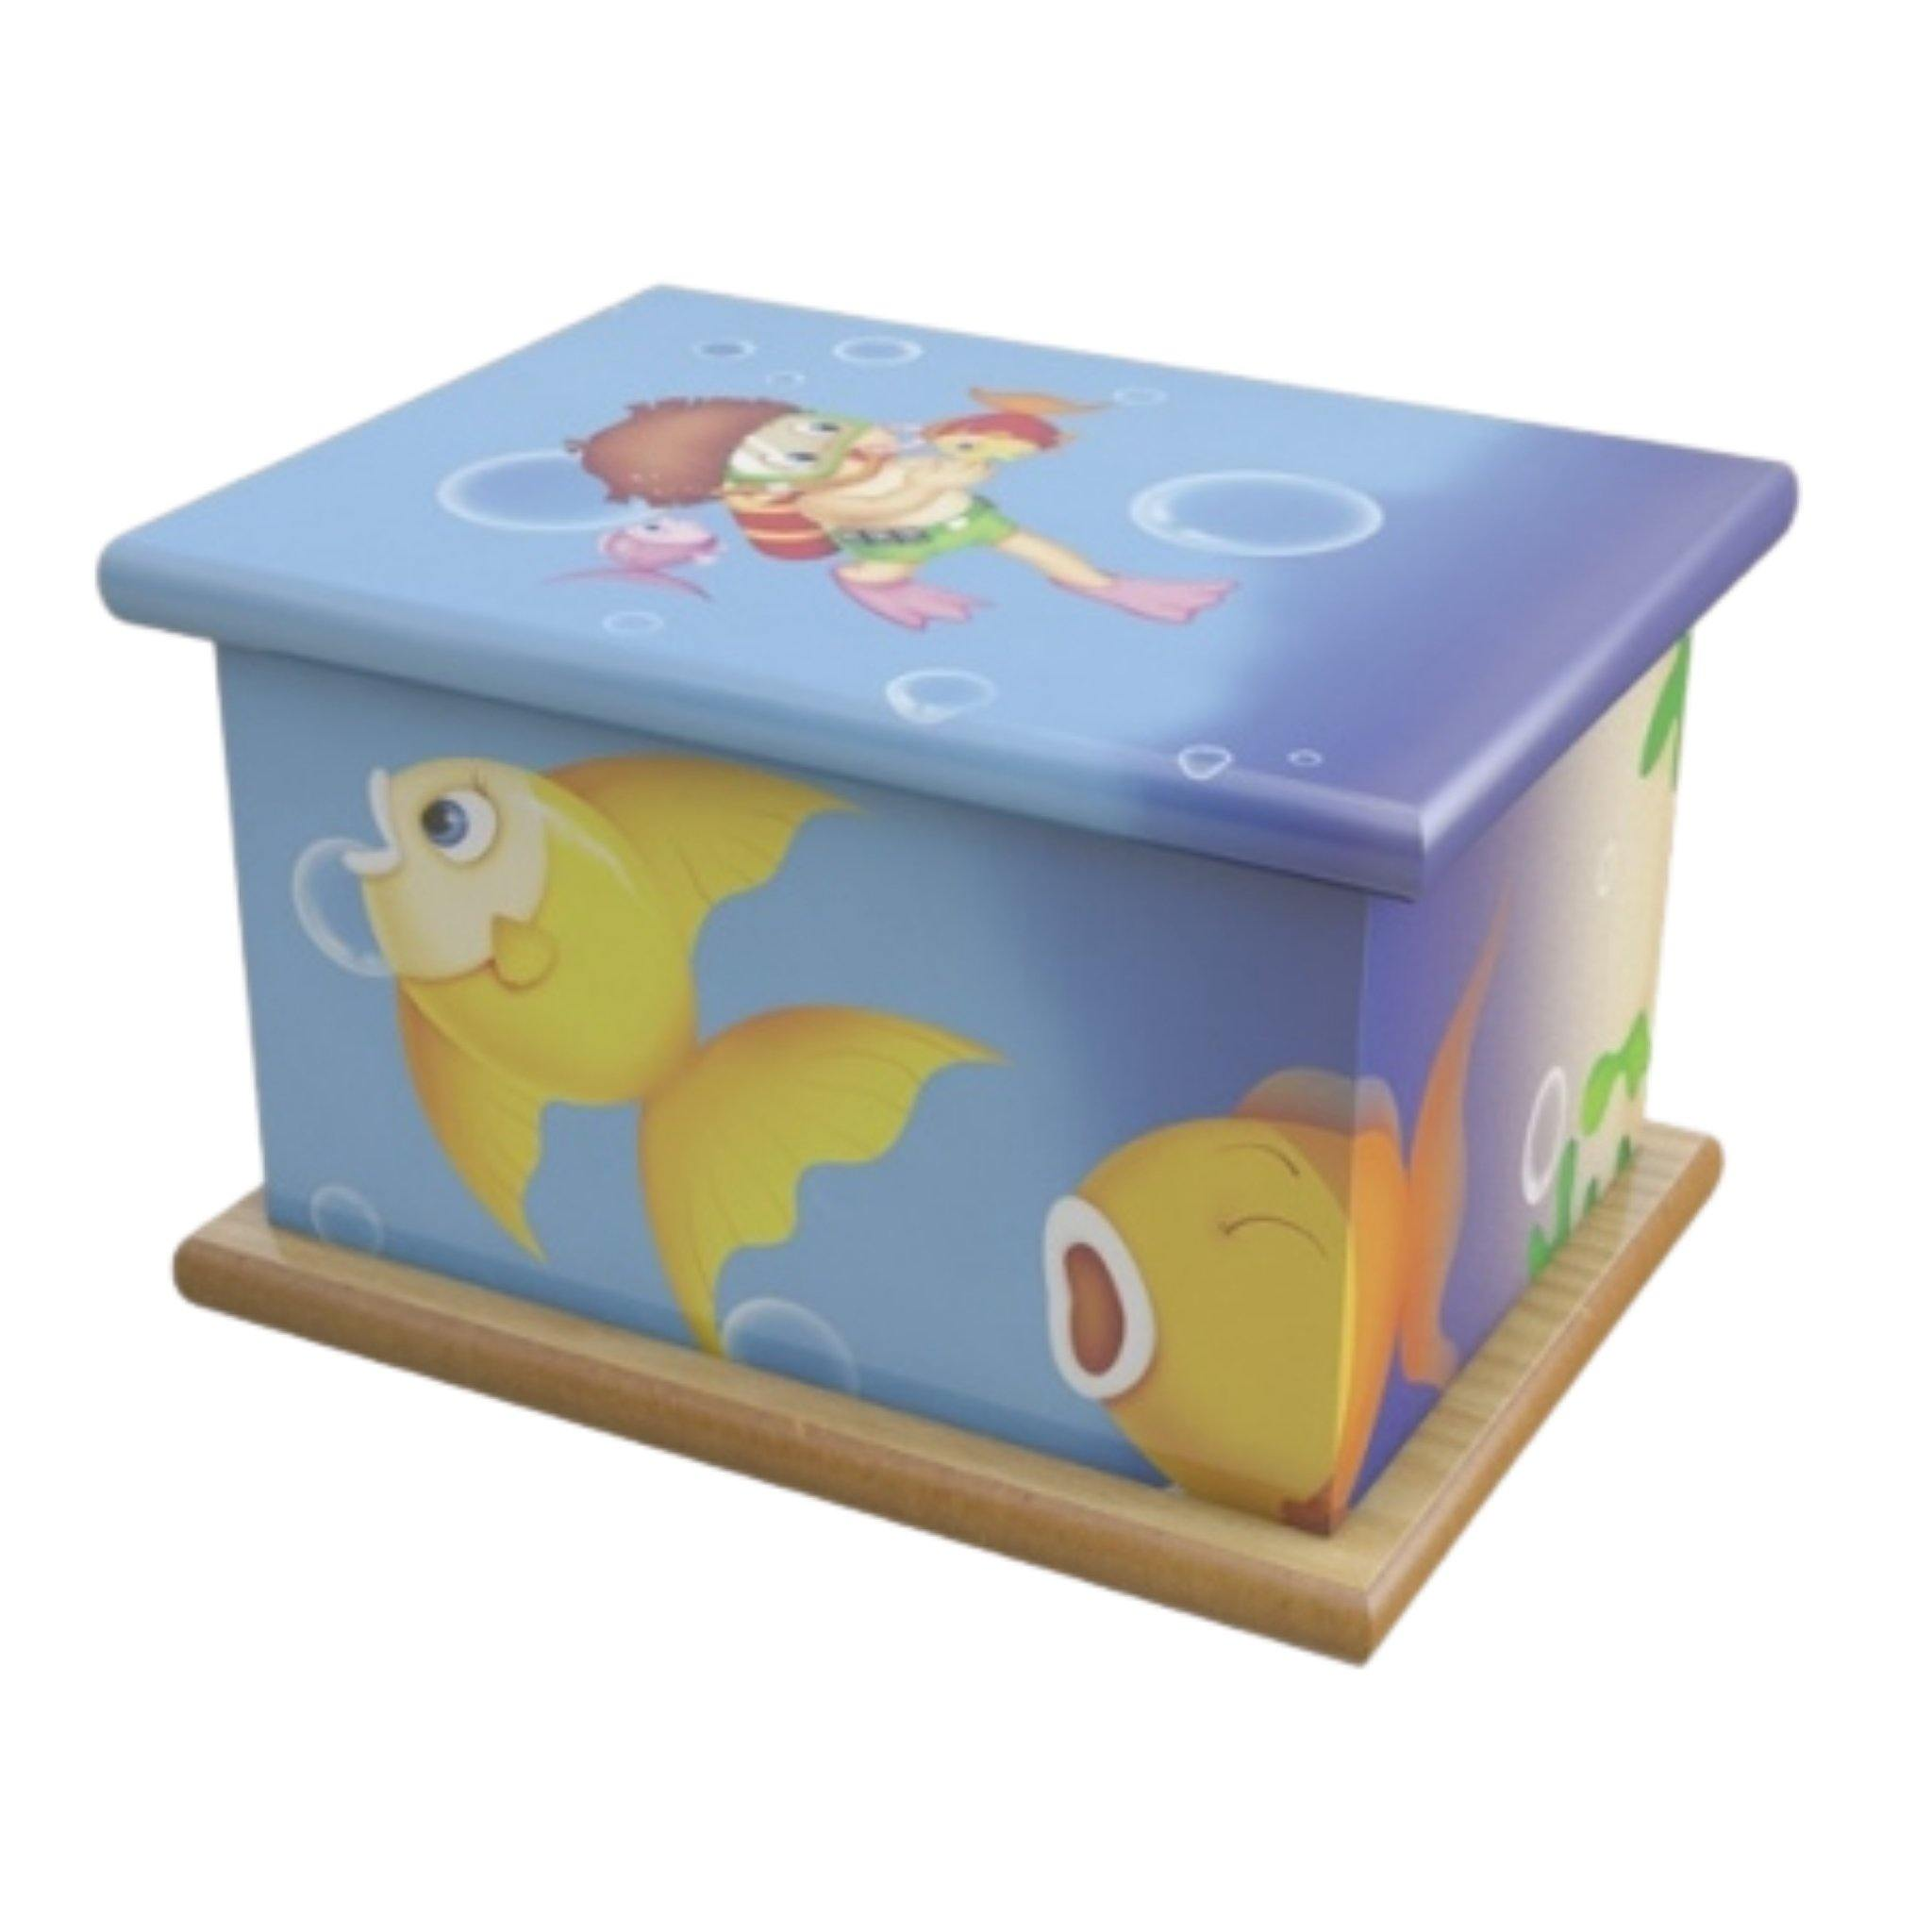 Wooden Urn Bubbles Child - Urns UK